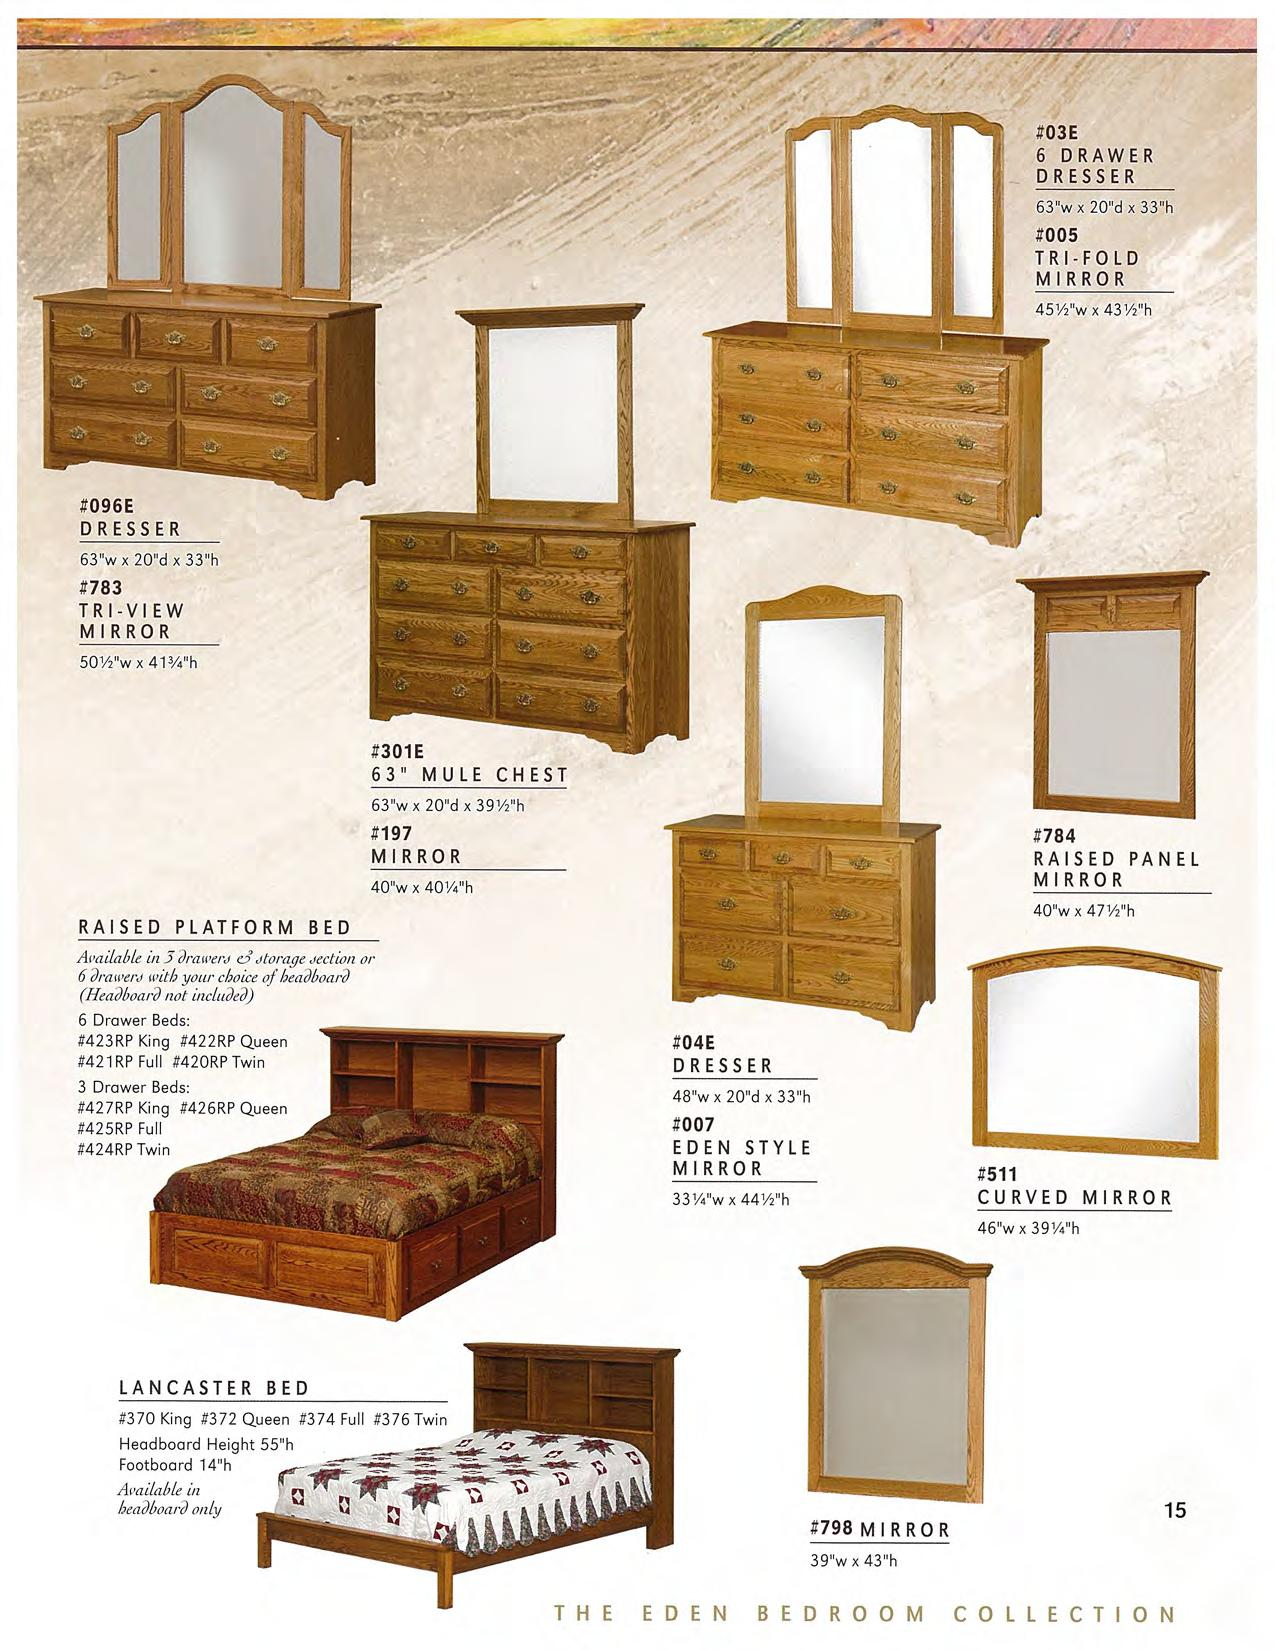 furniture-page-015